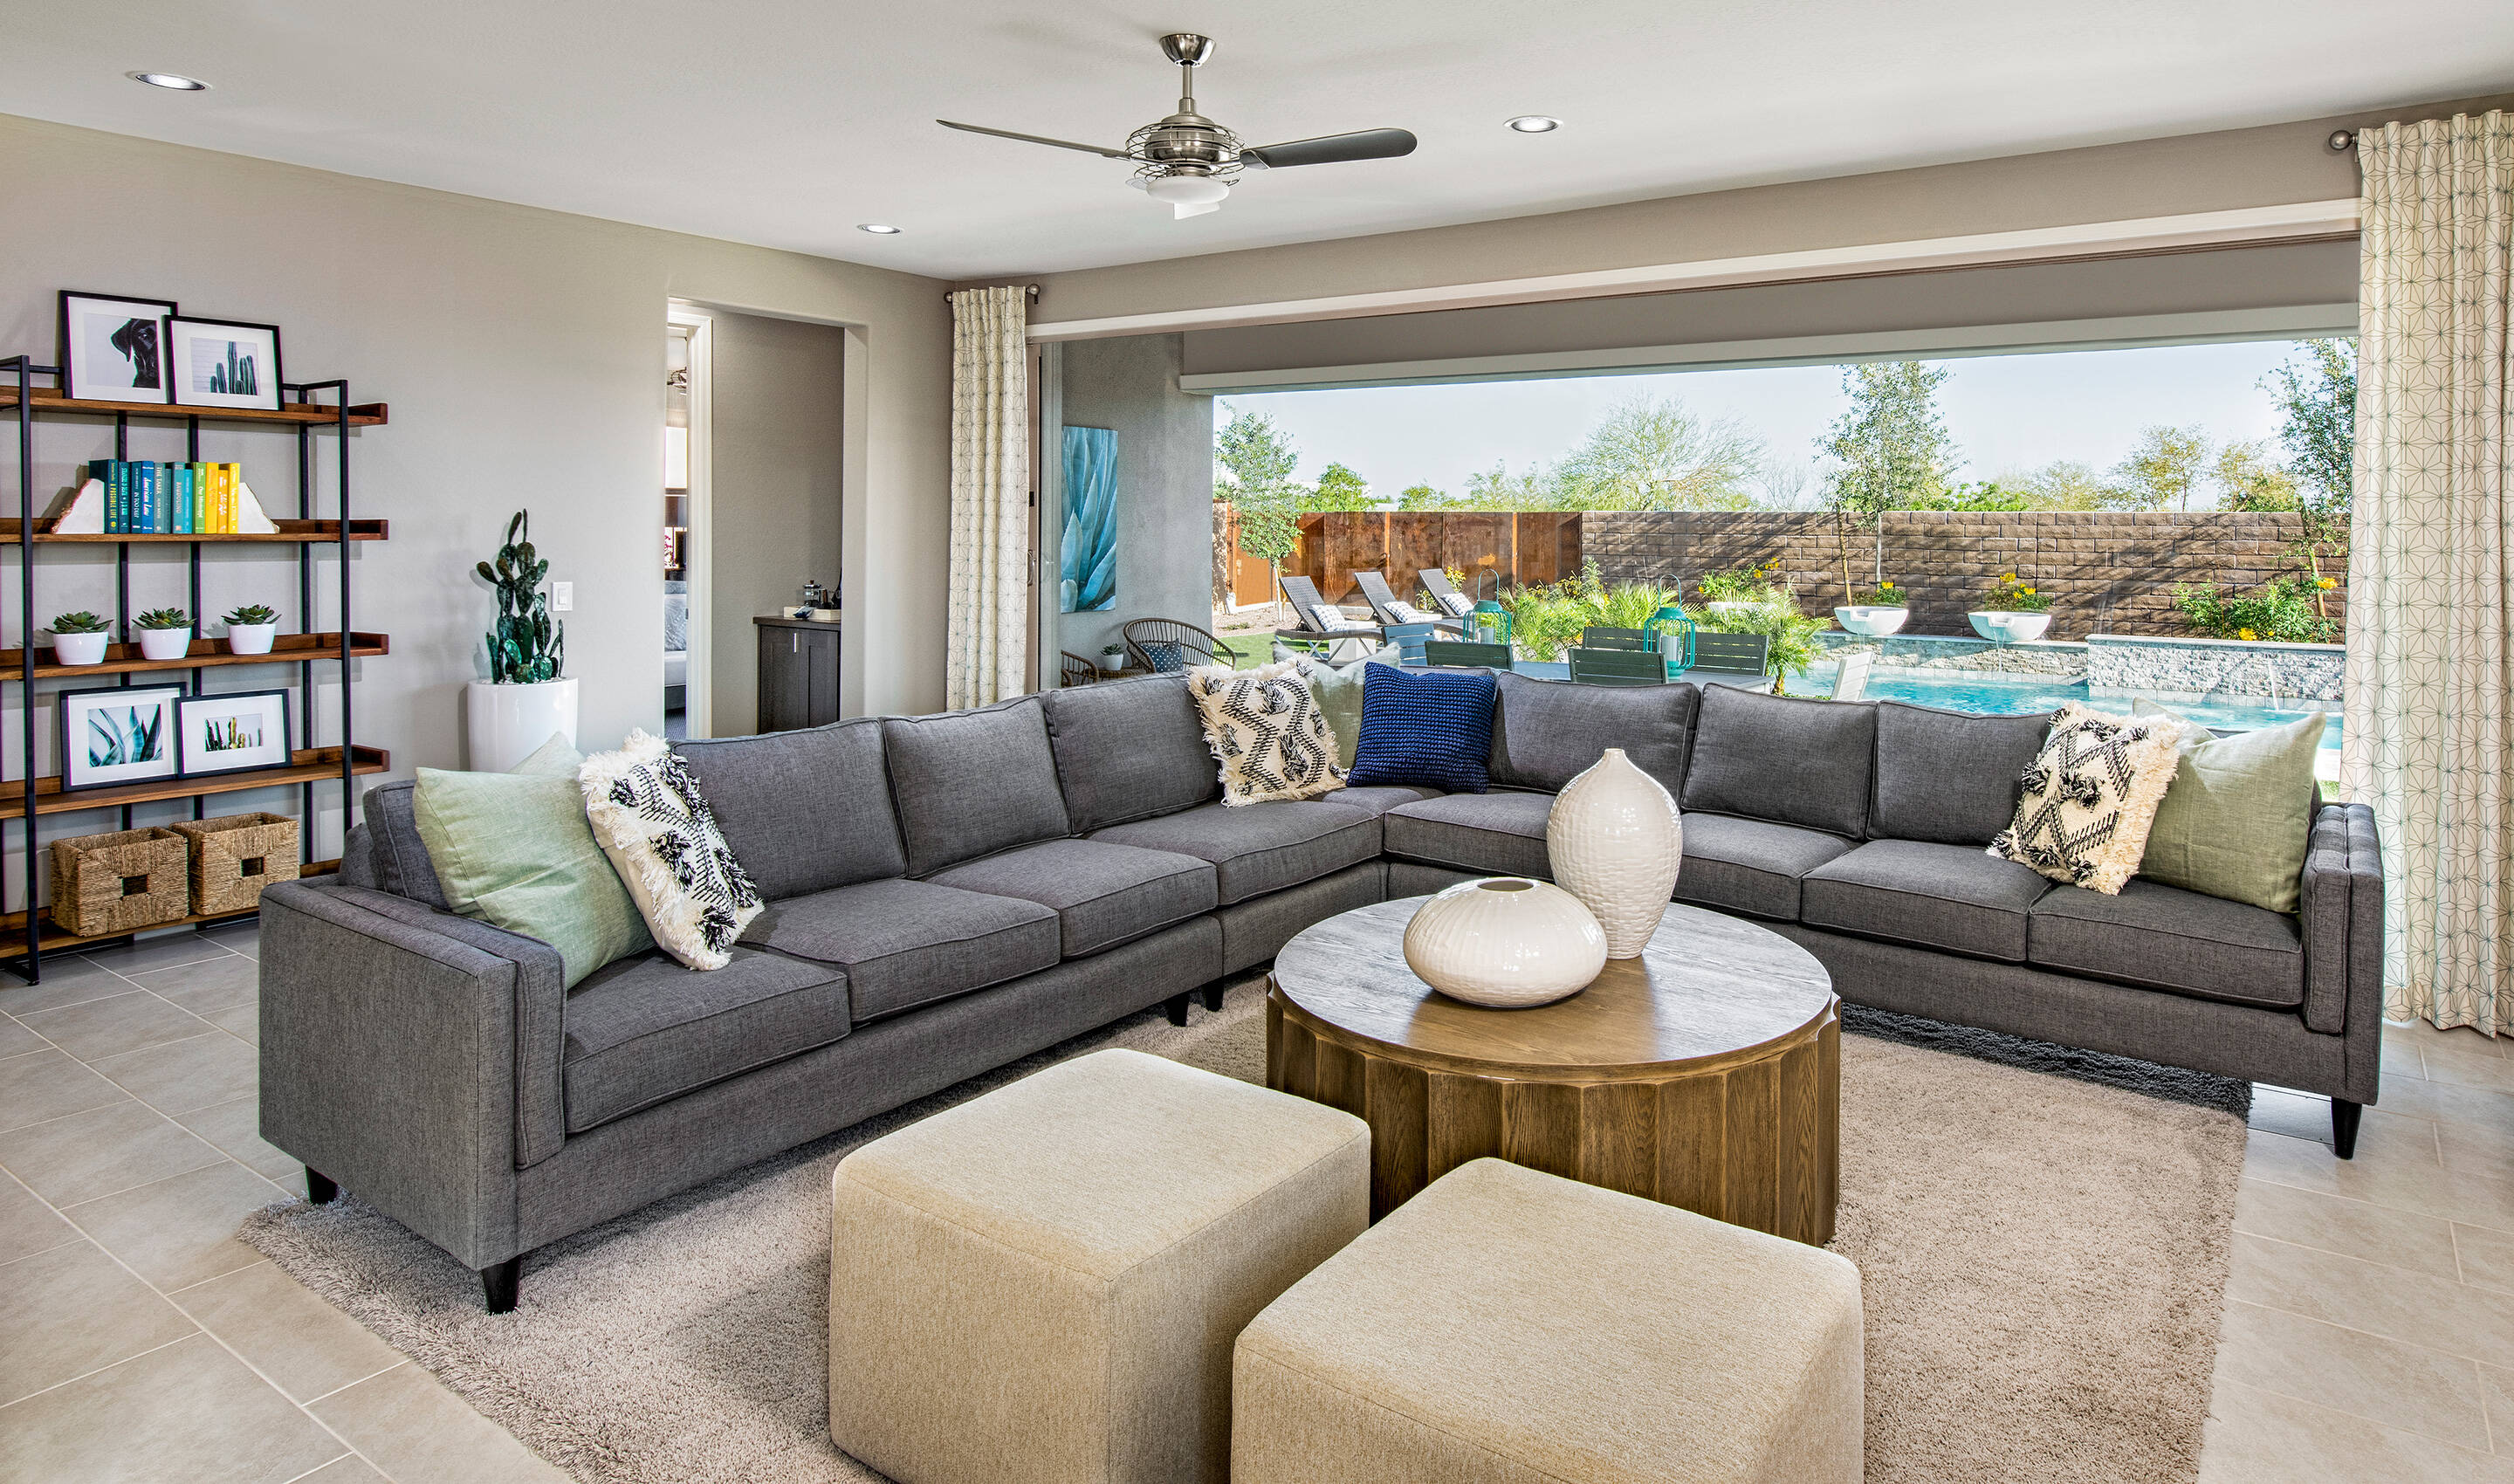 verona-great-room-montage-at-the-meadows-new-homes-peoria-az